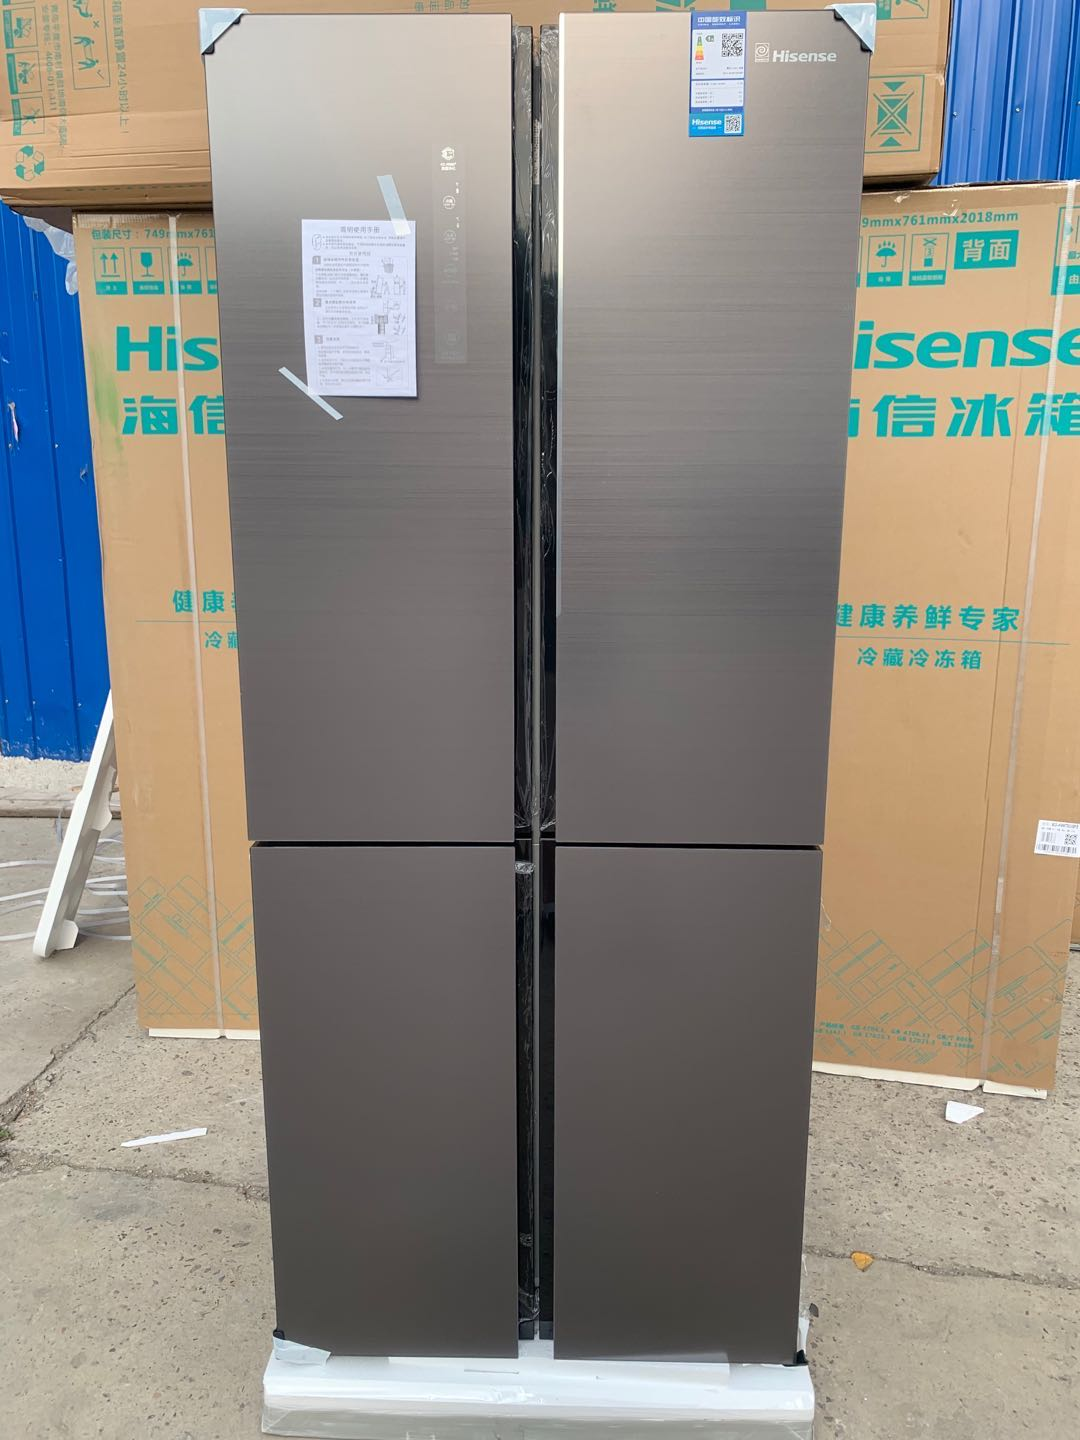 Hisense bcd-450wtdgvbp cross opposite door four door air cooled frost free one level frequency conversion sterilization Sishen refrigerator